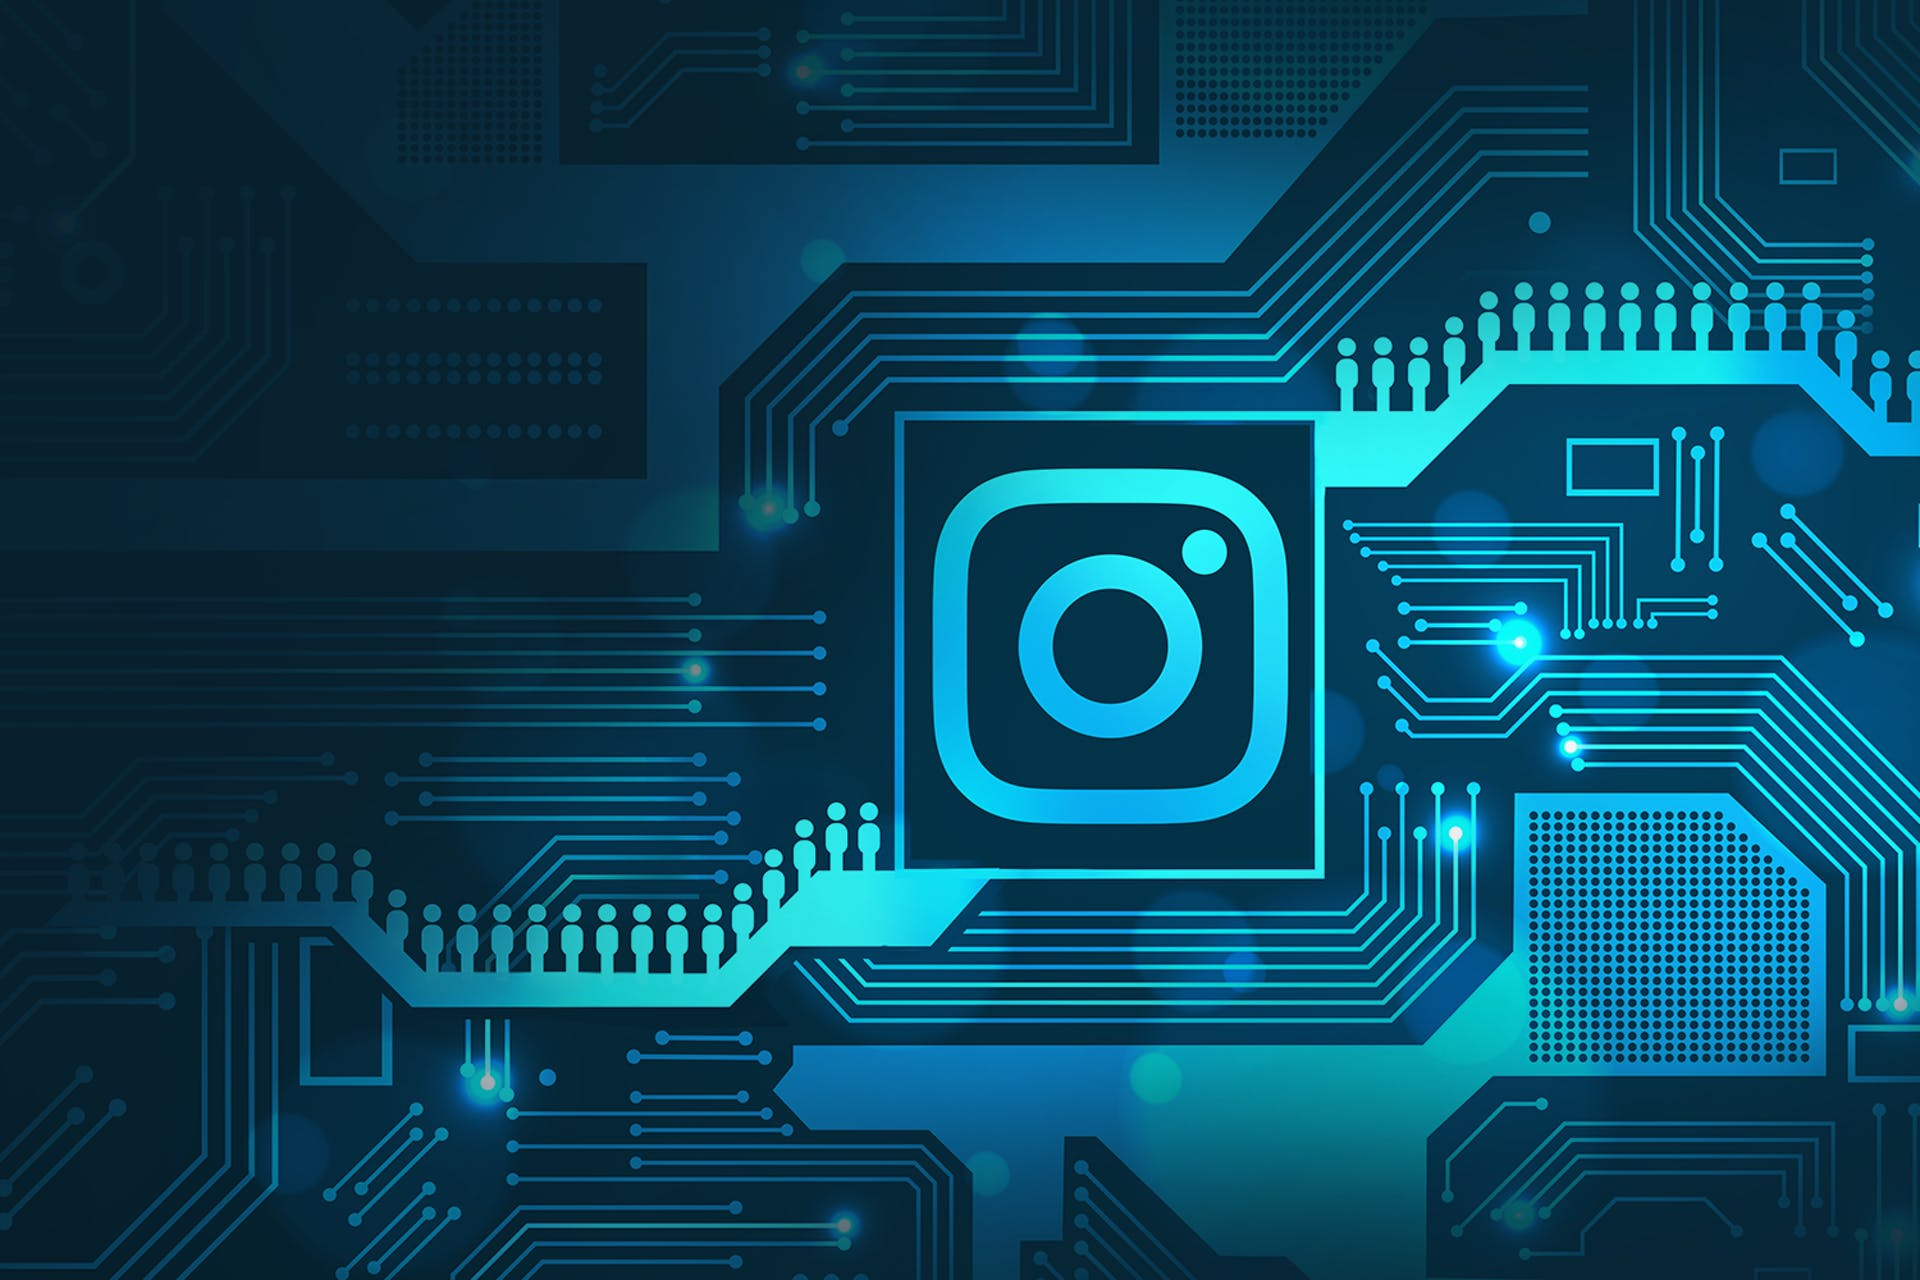 Abstract motherboard graphic with Instagram logo and rows of people.